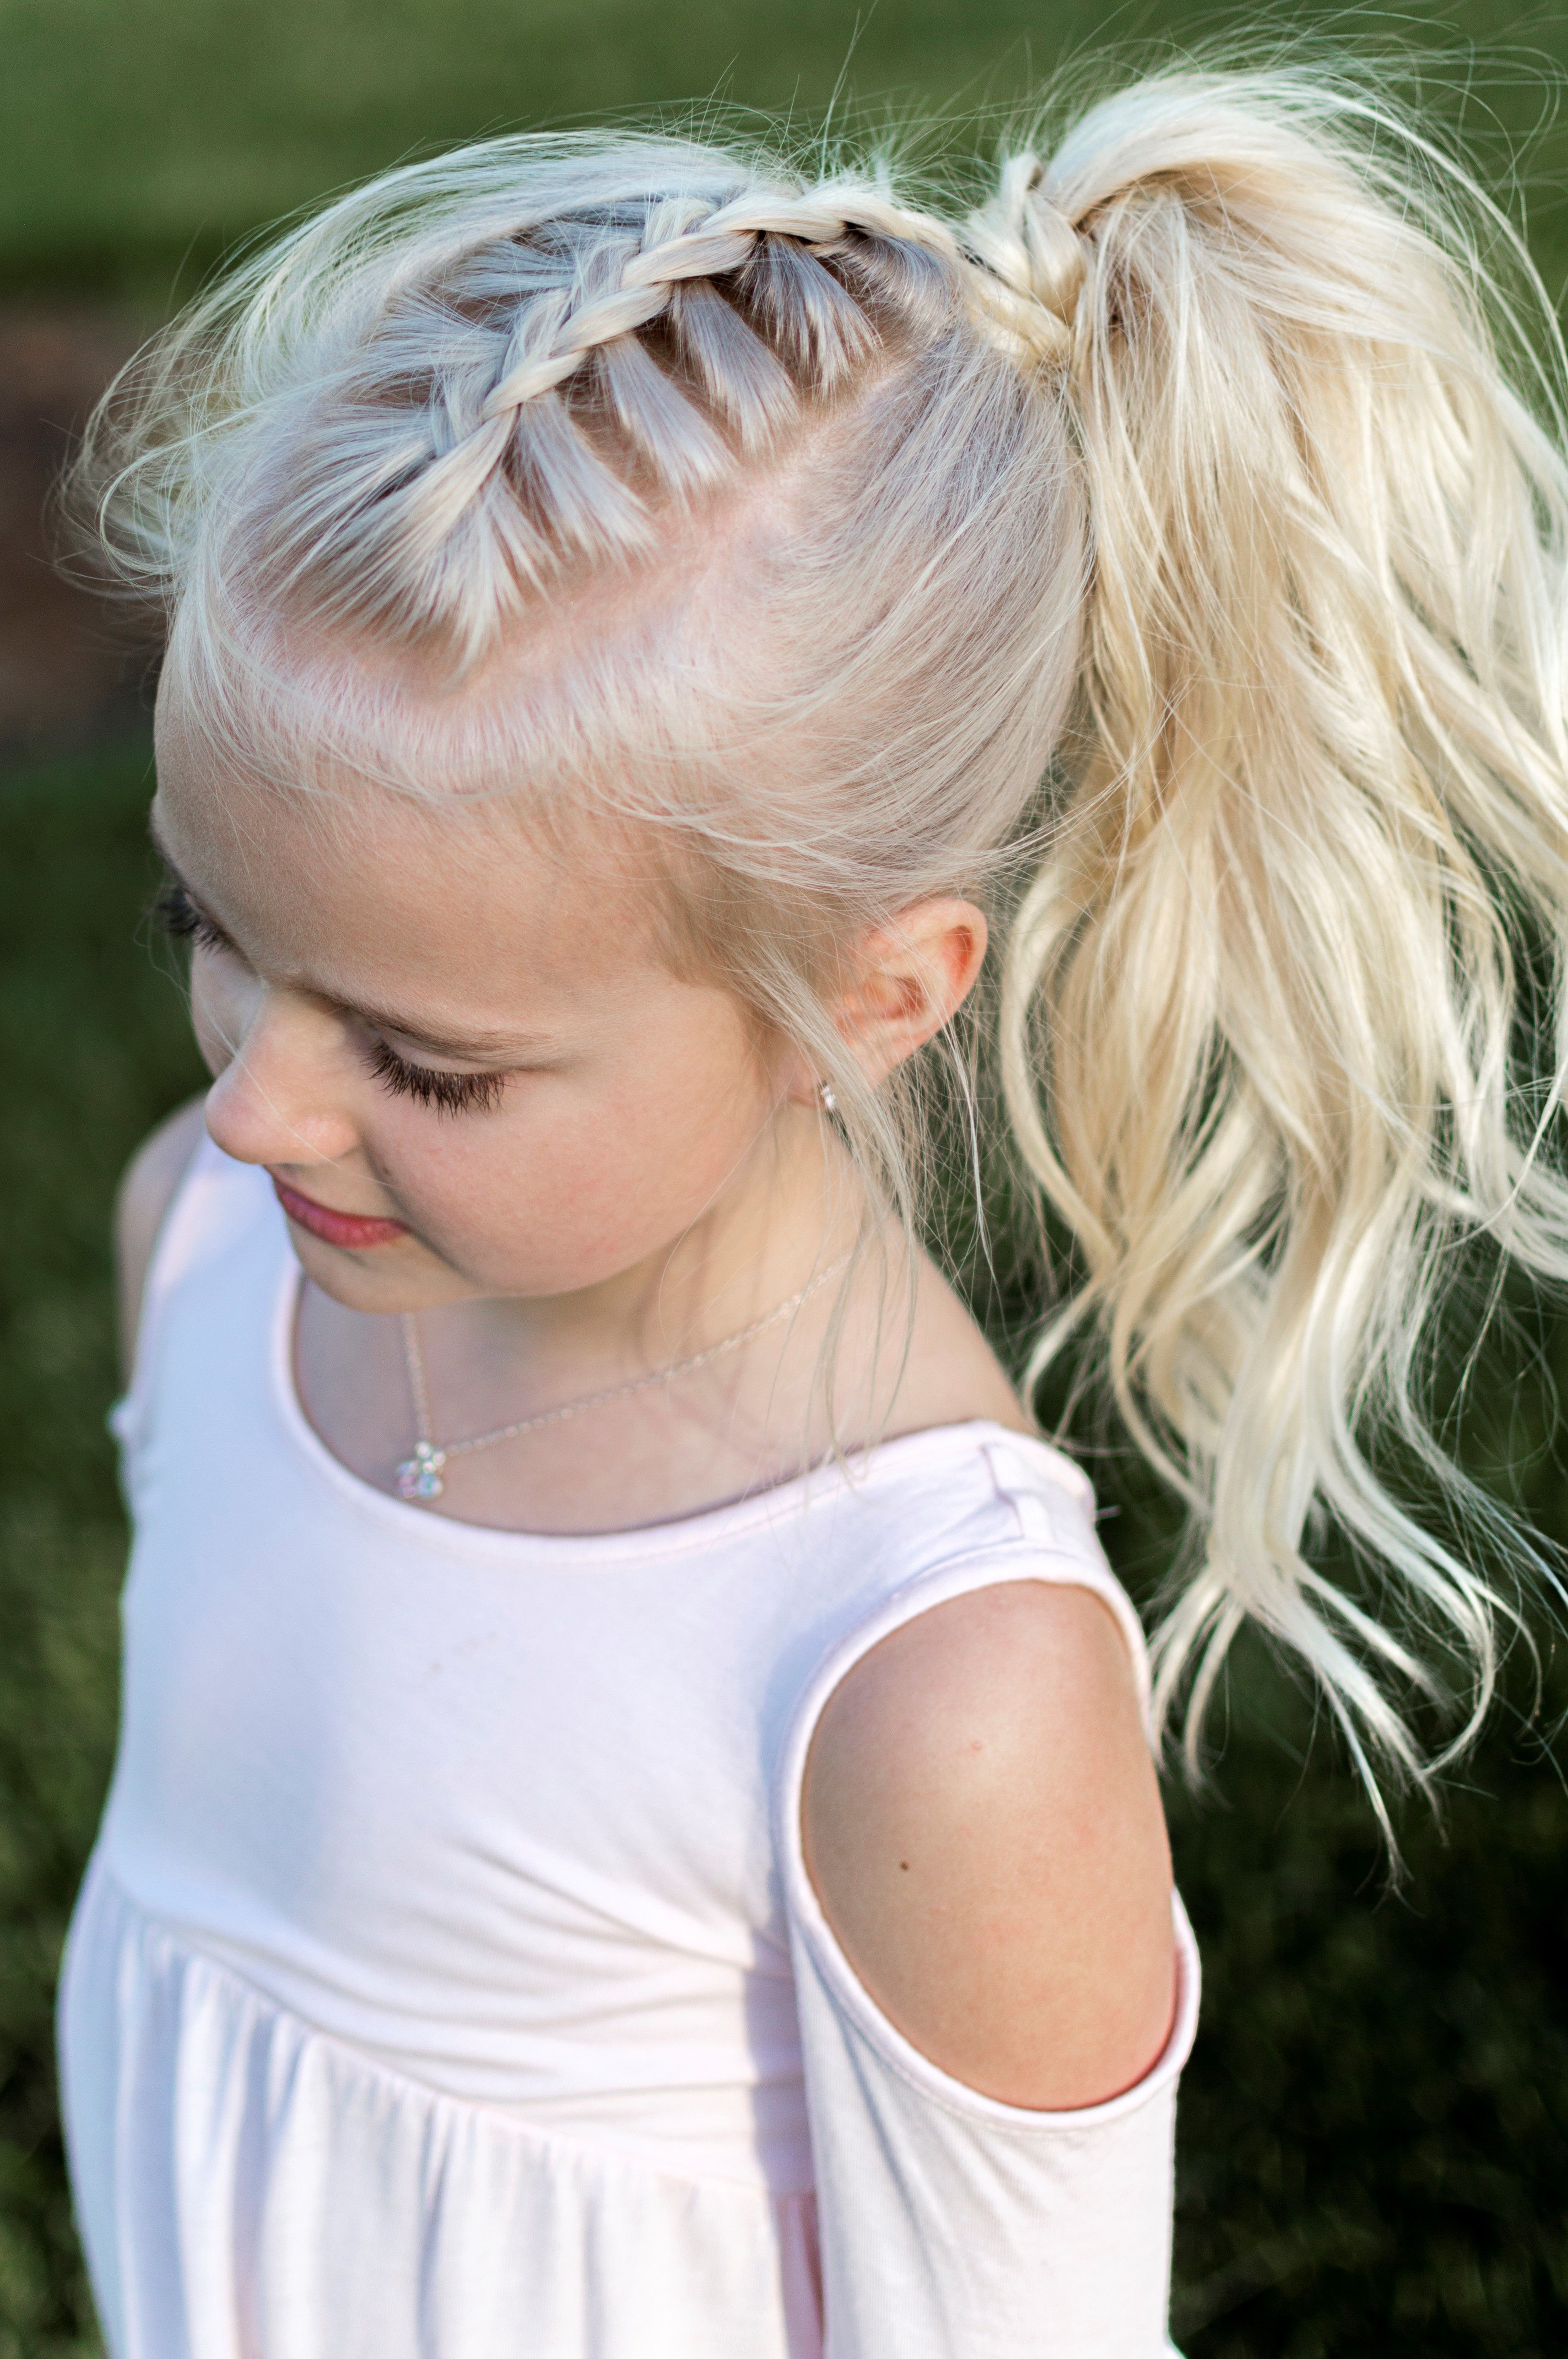 Newest High Braided Pony Hairstyles With Peek A Boo Bangs Regarding Little Girl Hairstyle French Braid Pony Tail Curls High Pony (View 17 of 20)